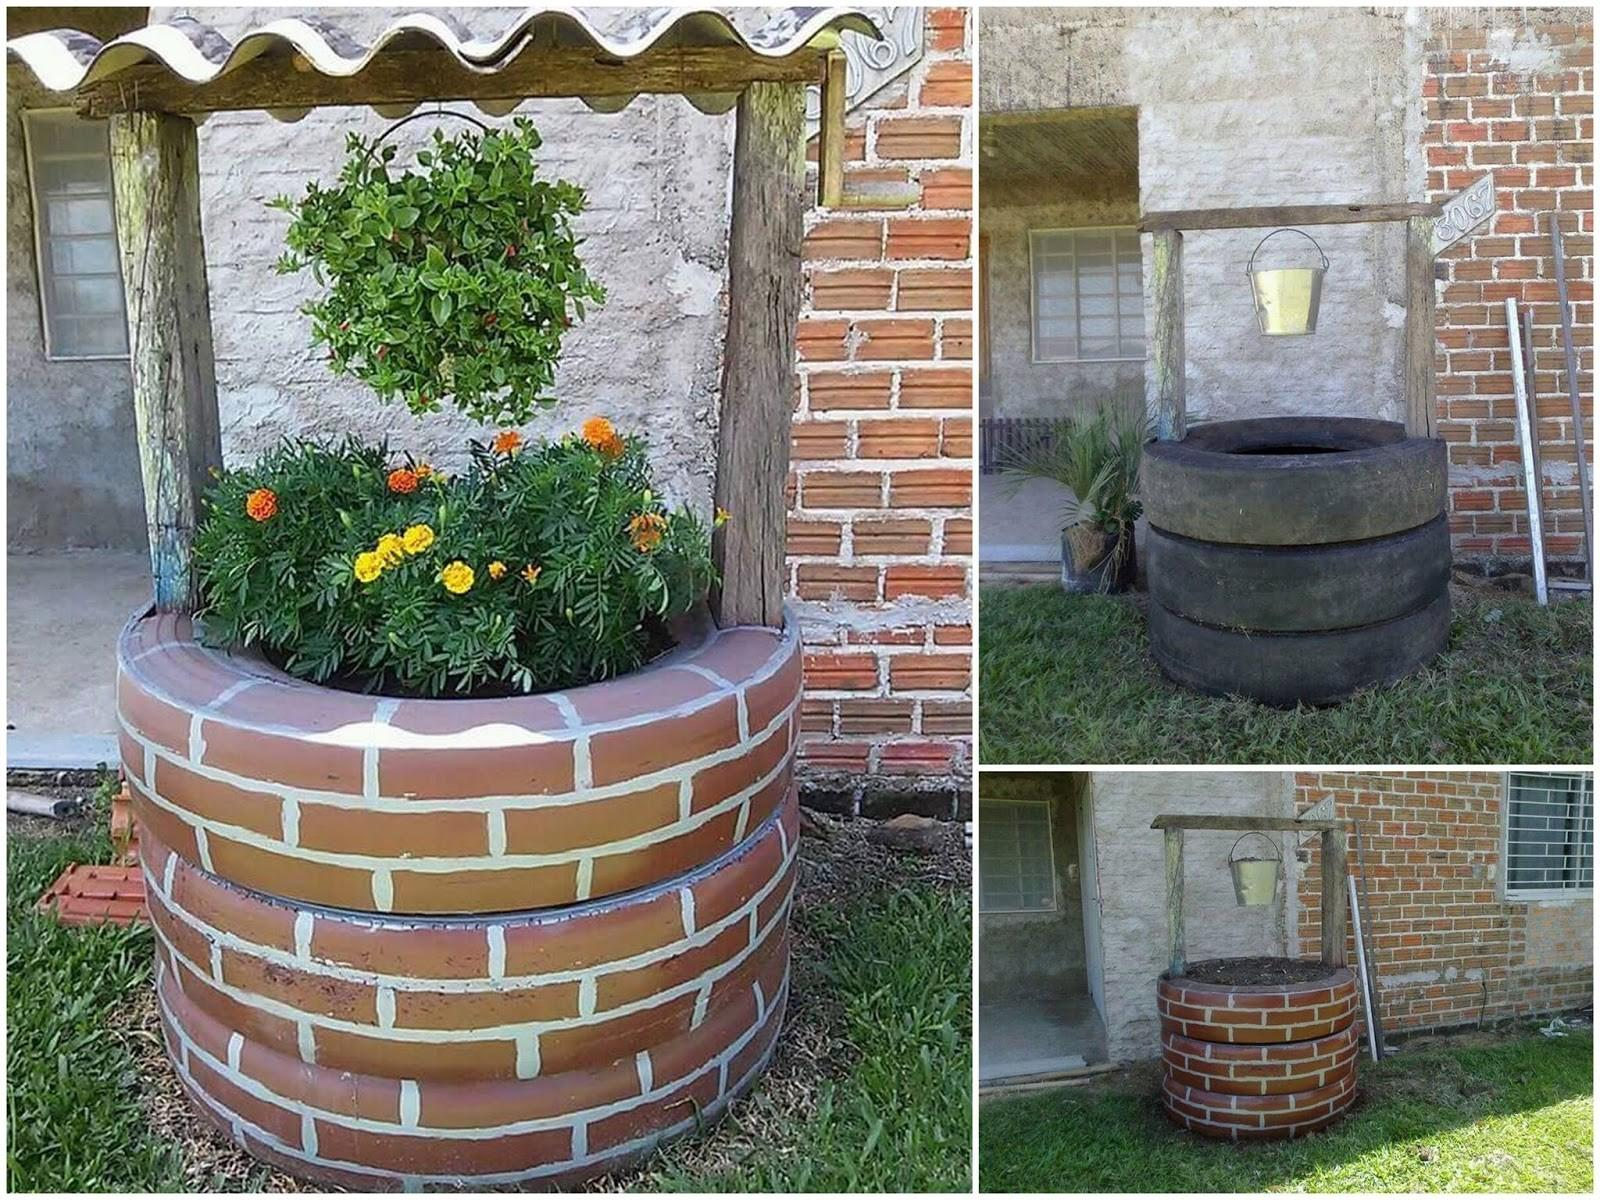 Diy Recycled Tires Wishing Well Home Design Garden